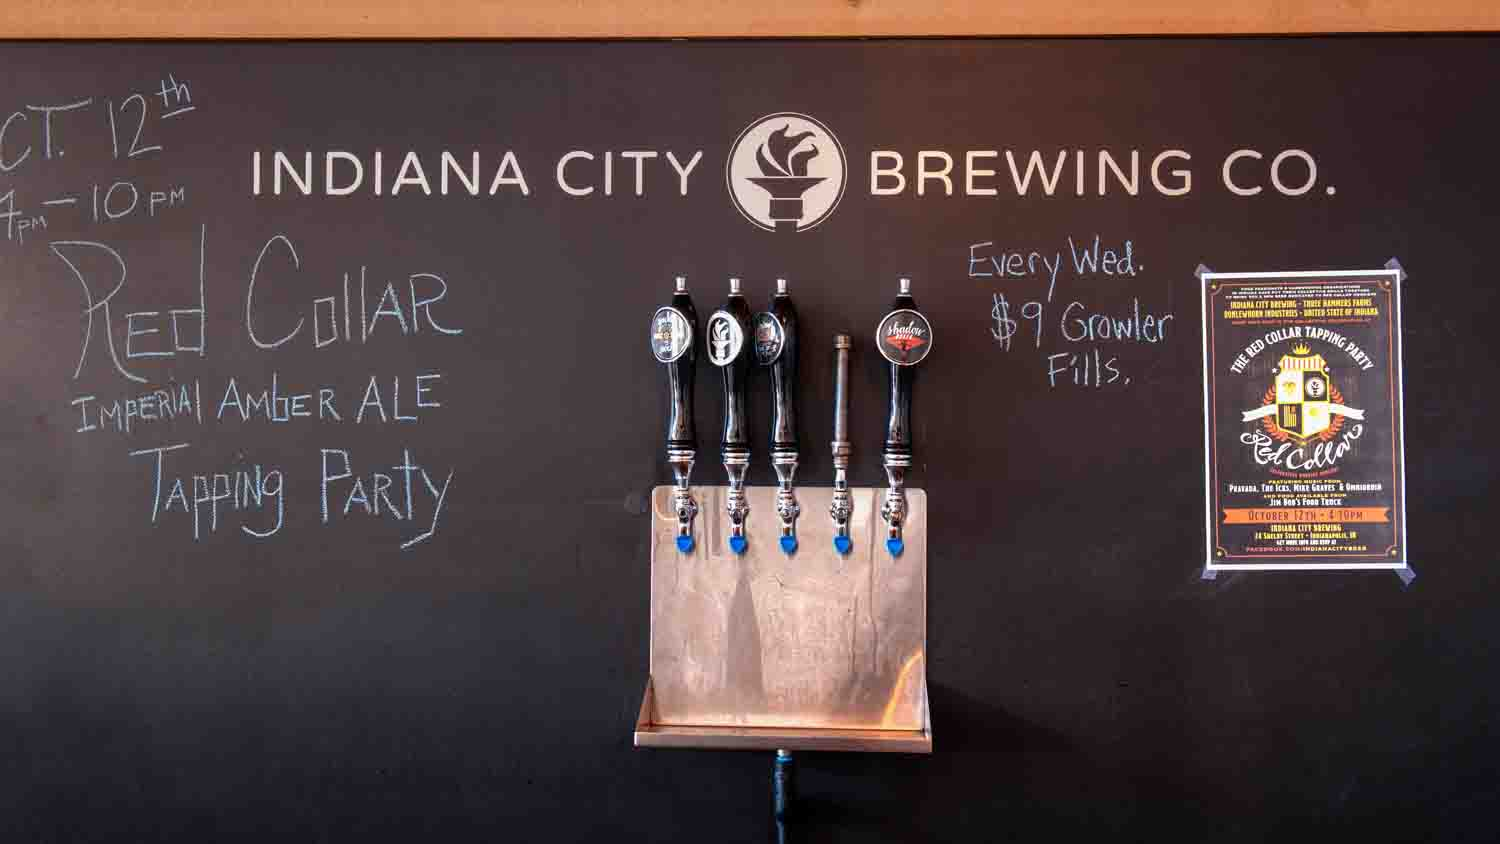 Indiana city brewing 2